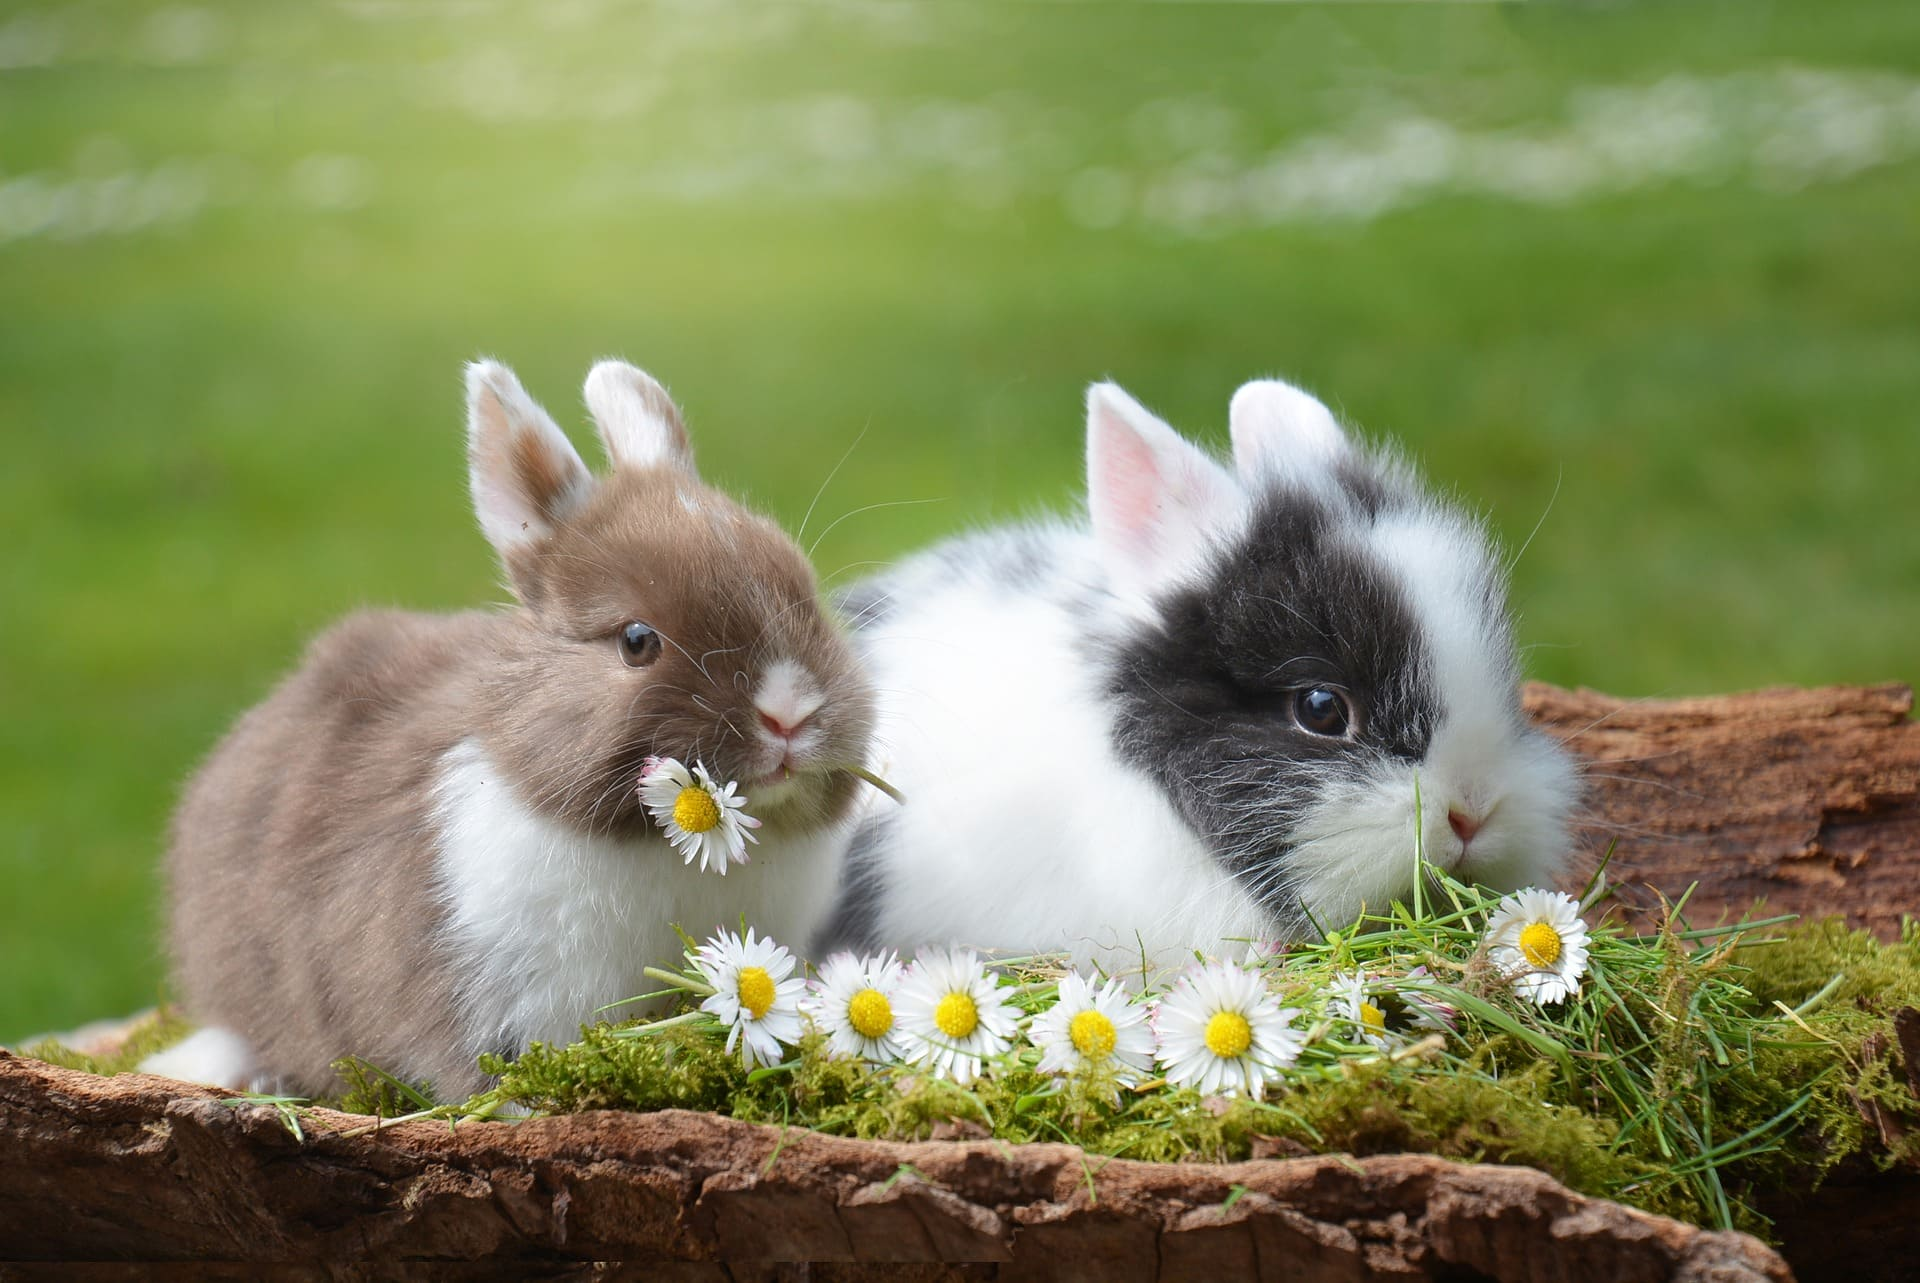 Two fluffy rabbits eating flowers  | Source: Pixabay